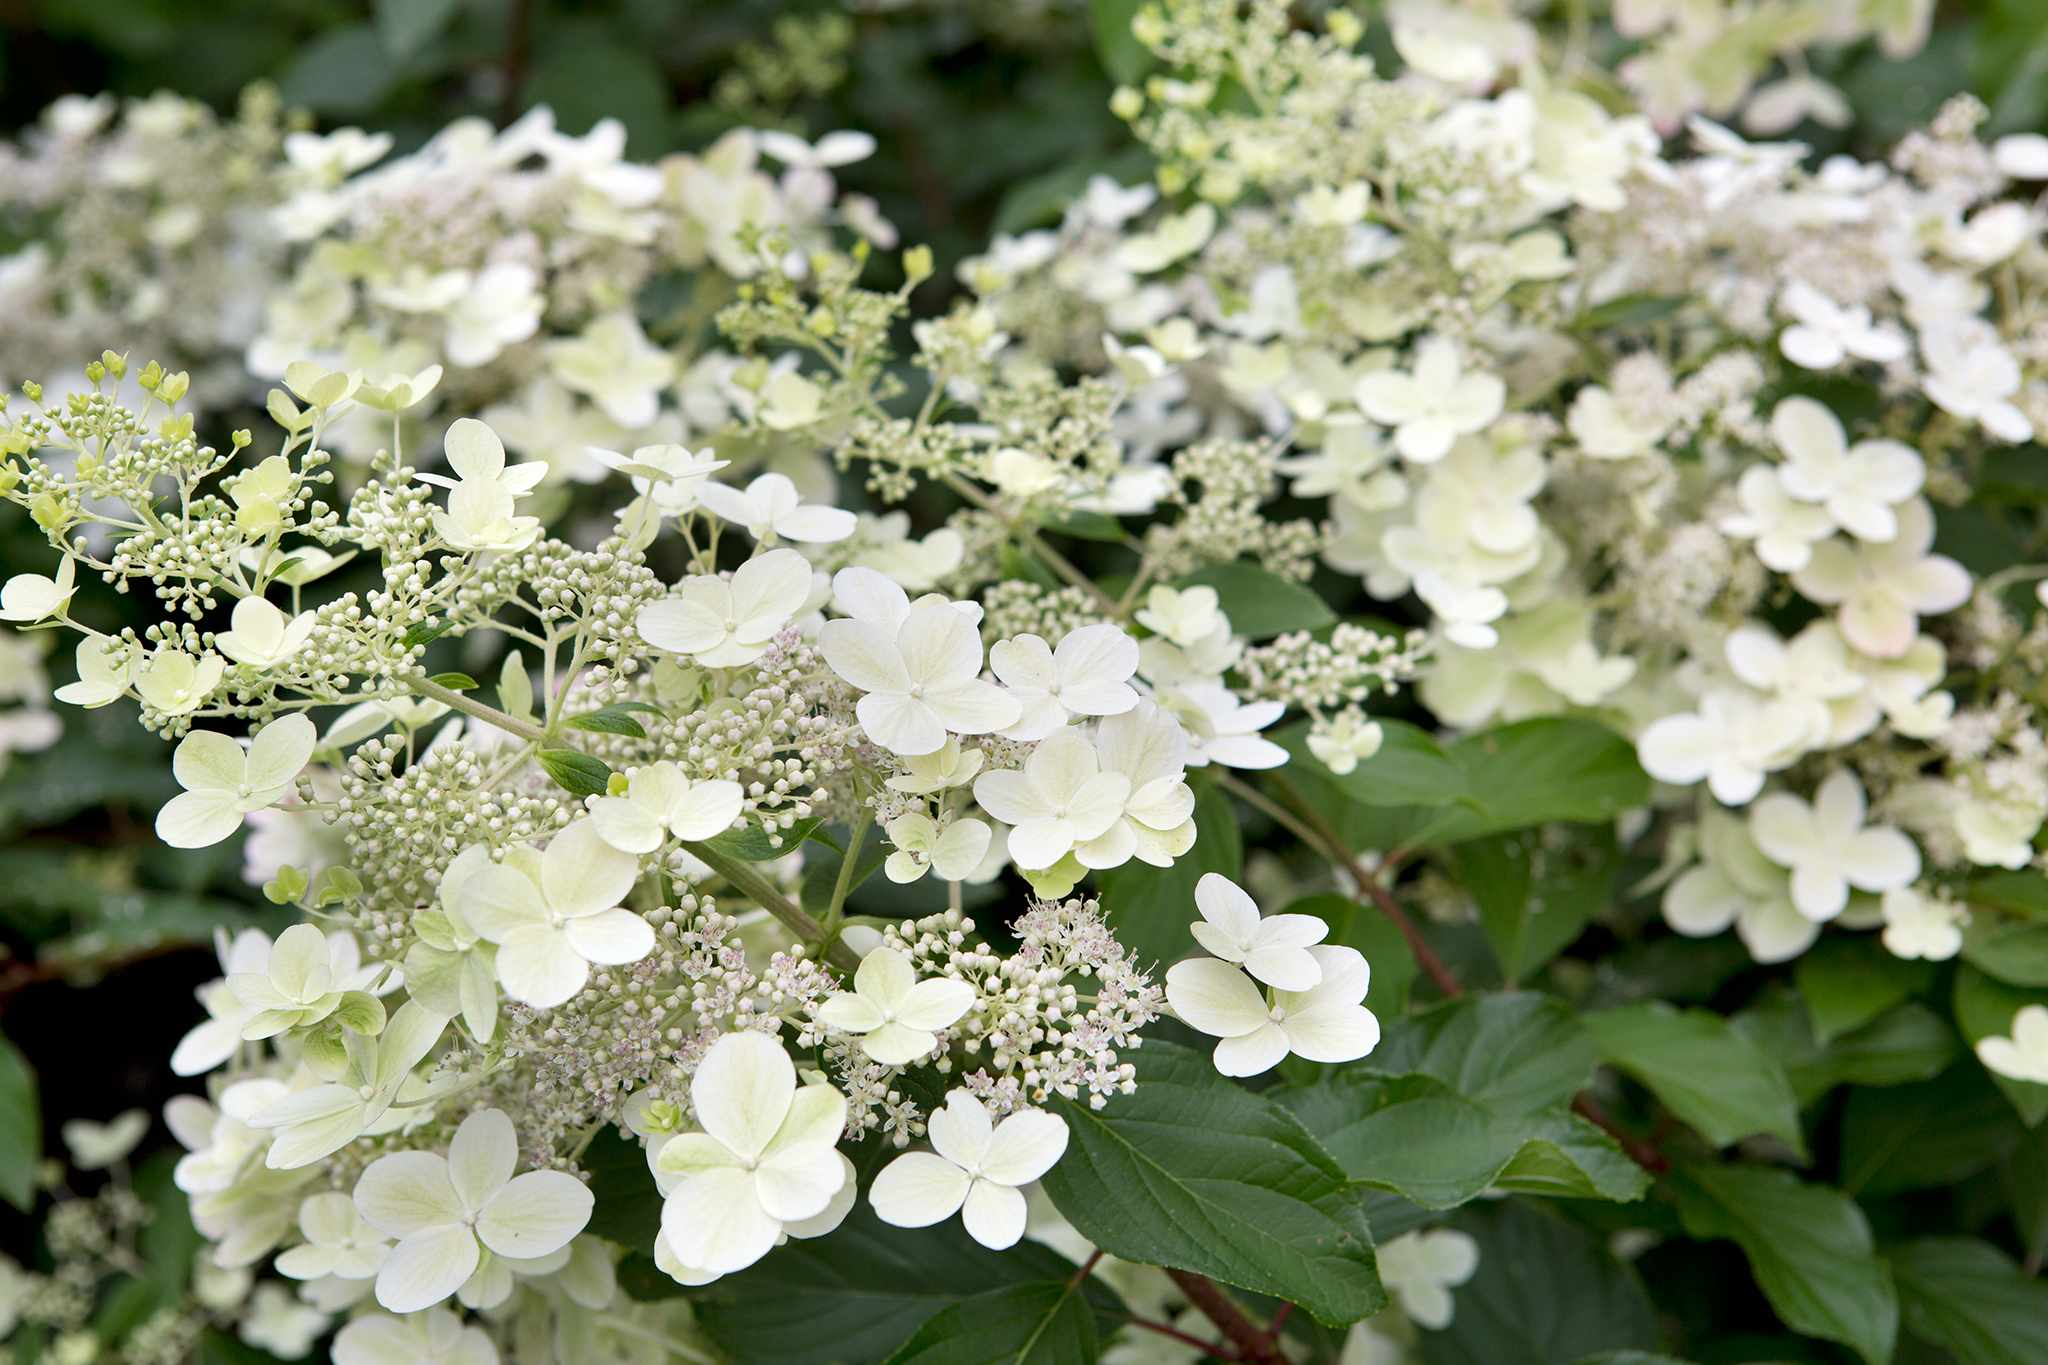 Hydrangea paniculata Savill Lace white flowers blooms late summer flowering deciduous shrub flowers good for drying  03/09/15 03/09/2015 030915 03092015 3 3rd September late Summer early Autumn The Savill Garden photographer Sarah Cuttle plant portraits